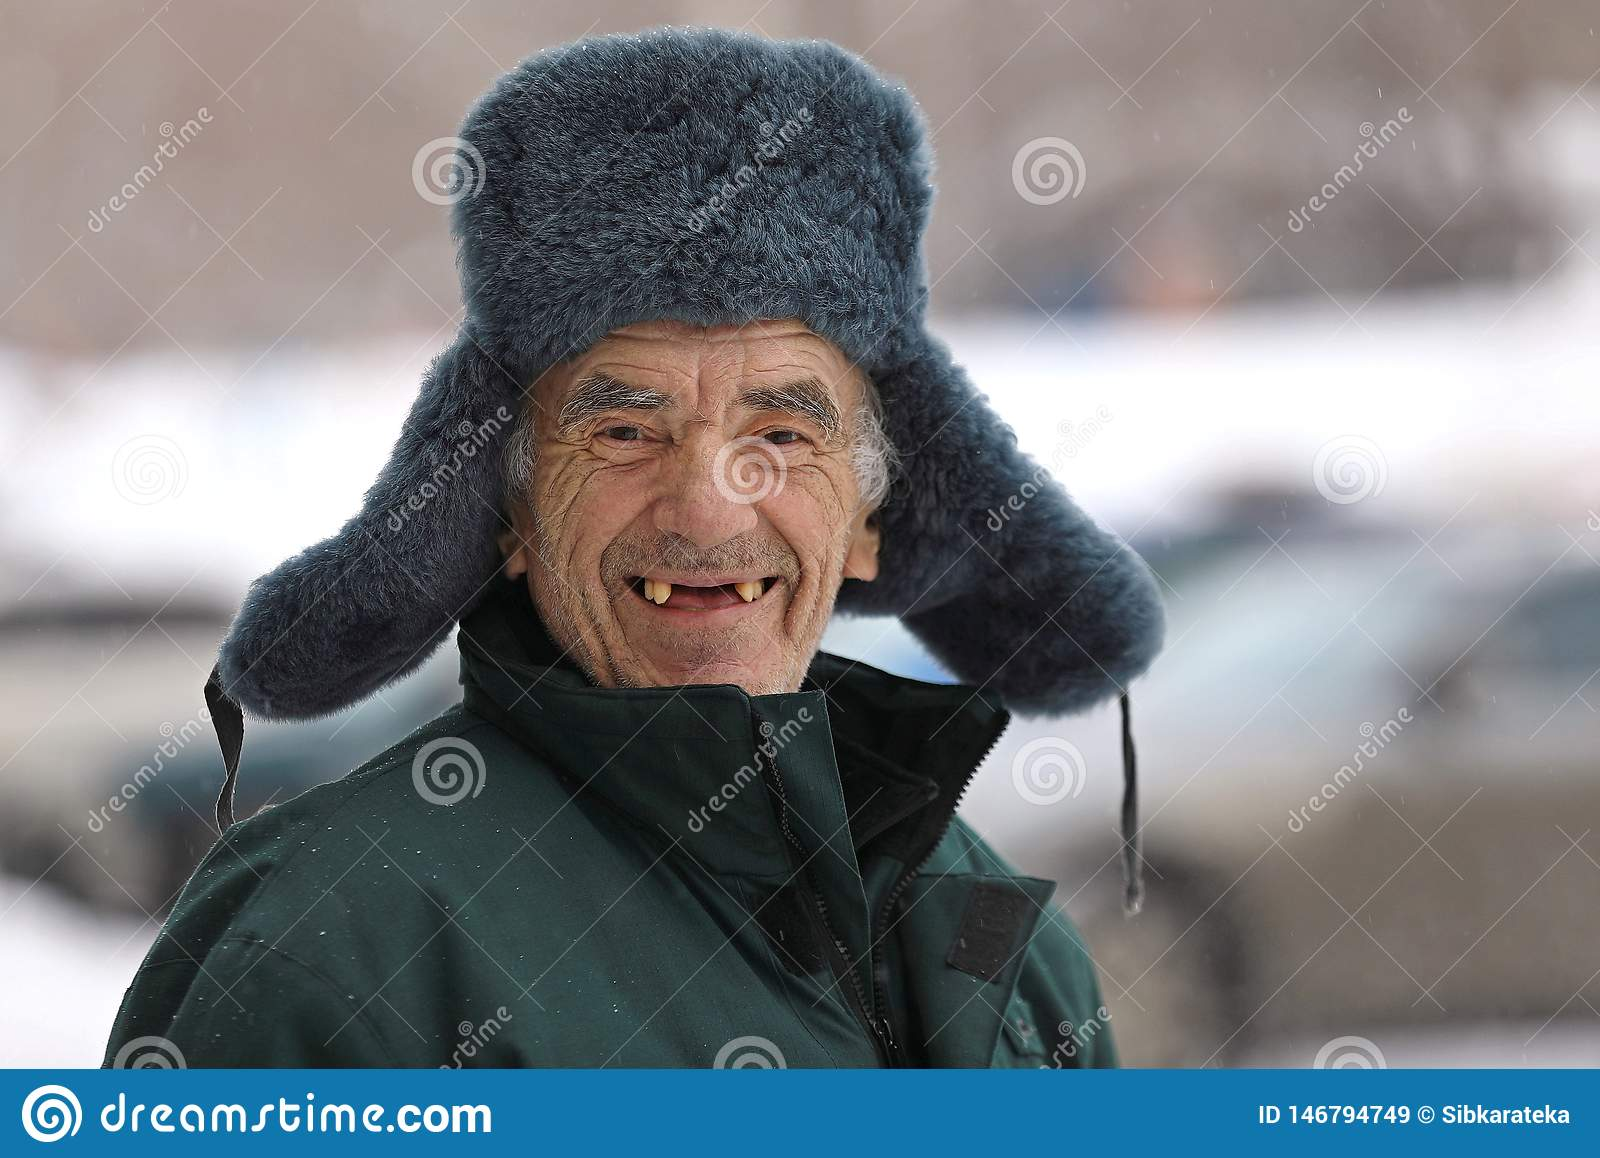 Russian old man in winter hat smiles